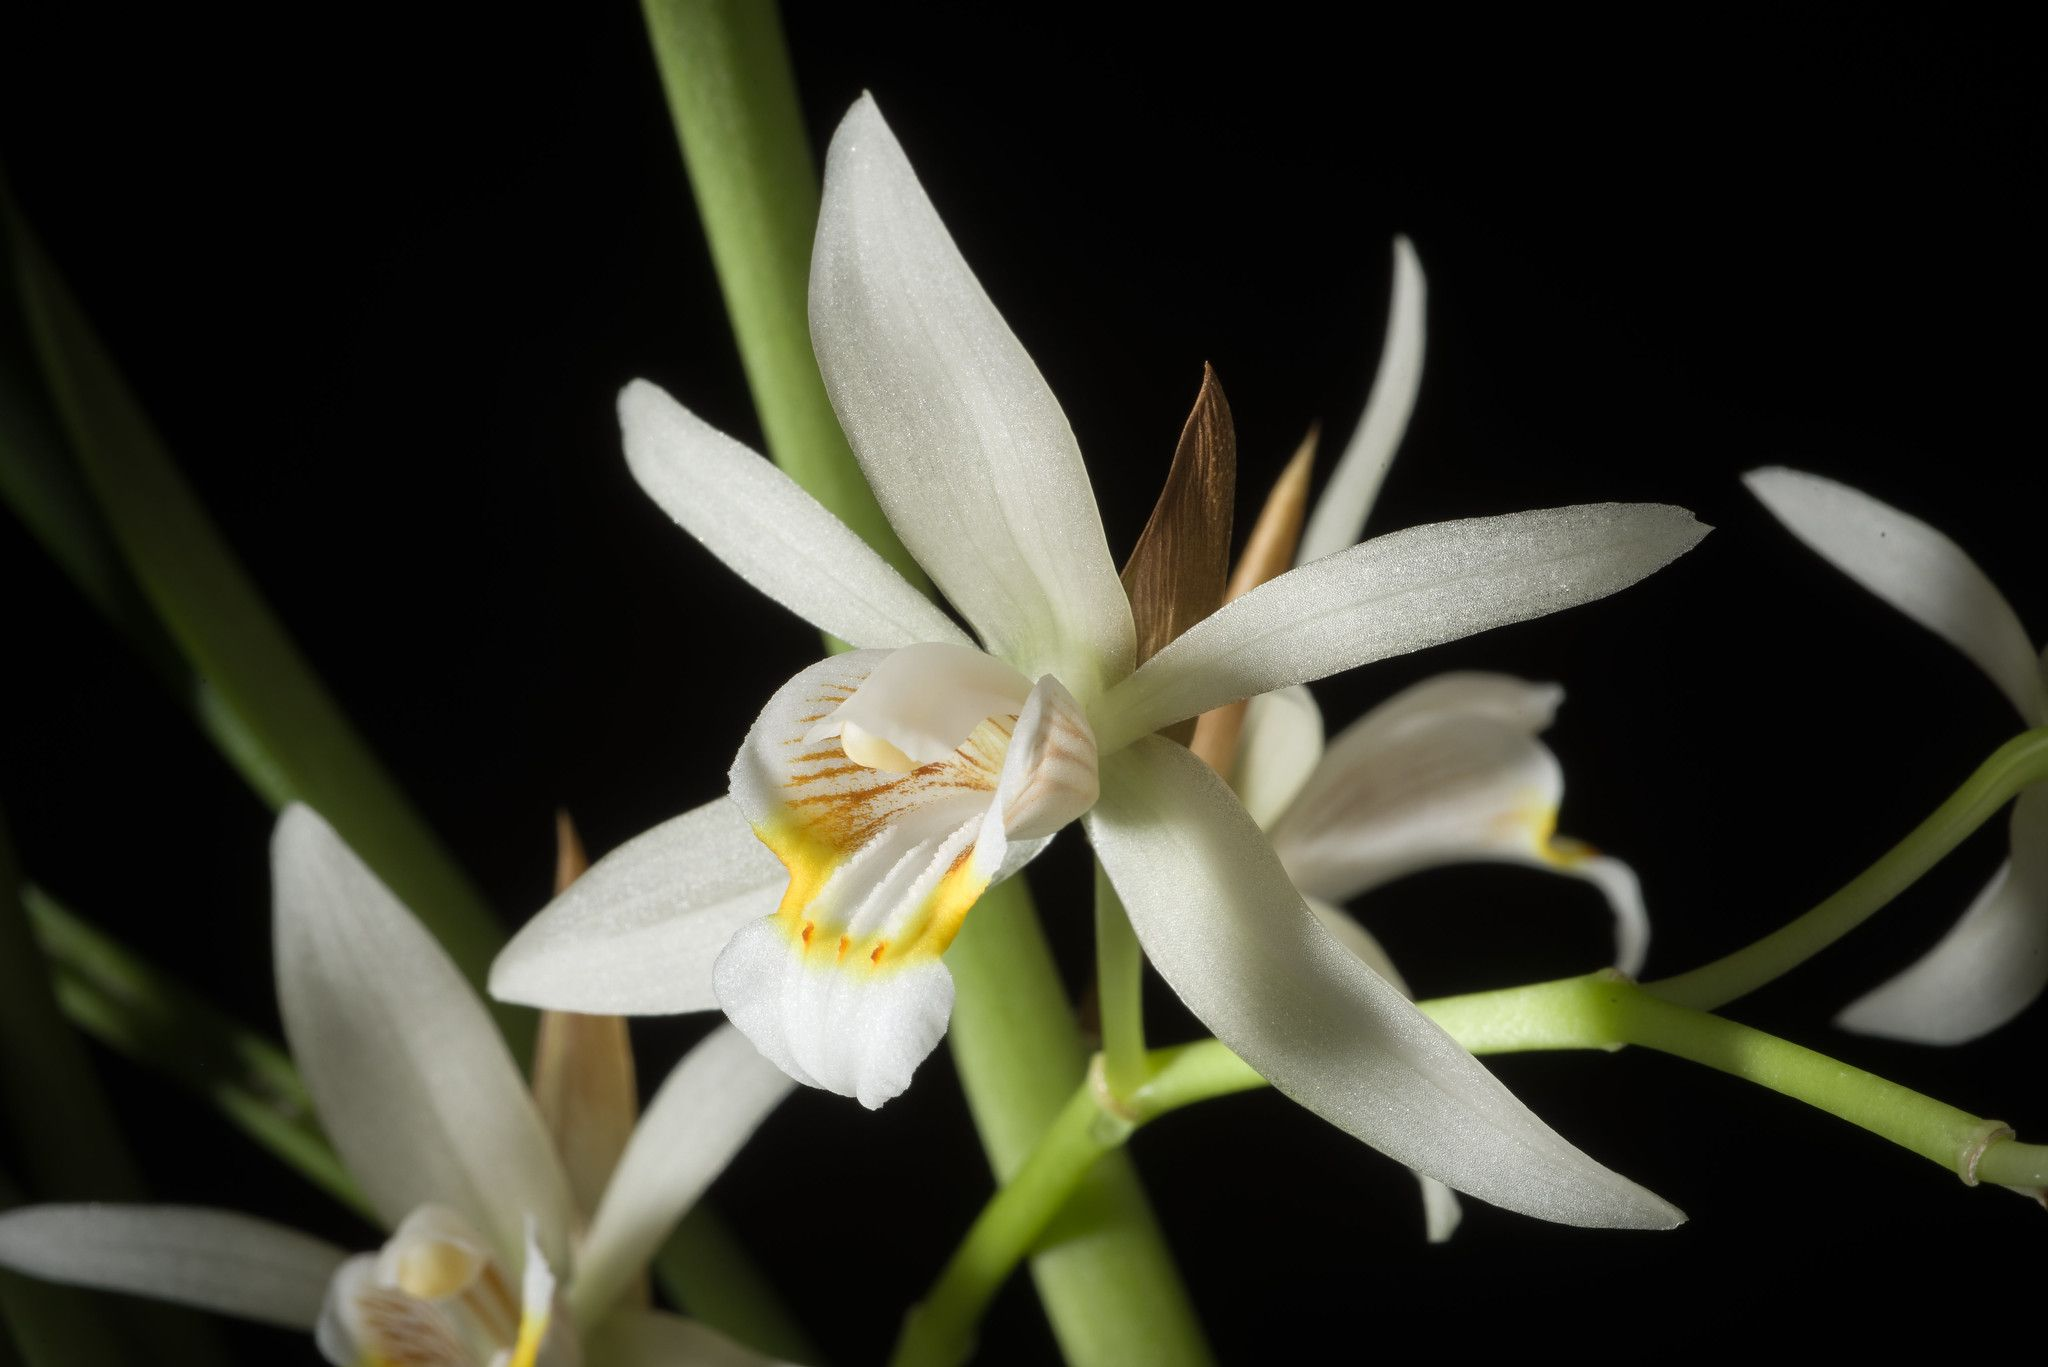 China Coelogyne Flaccida Lindl Gen Sp Orchid Pl 39 1830 Orchids Rare Orchids Epiphyte